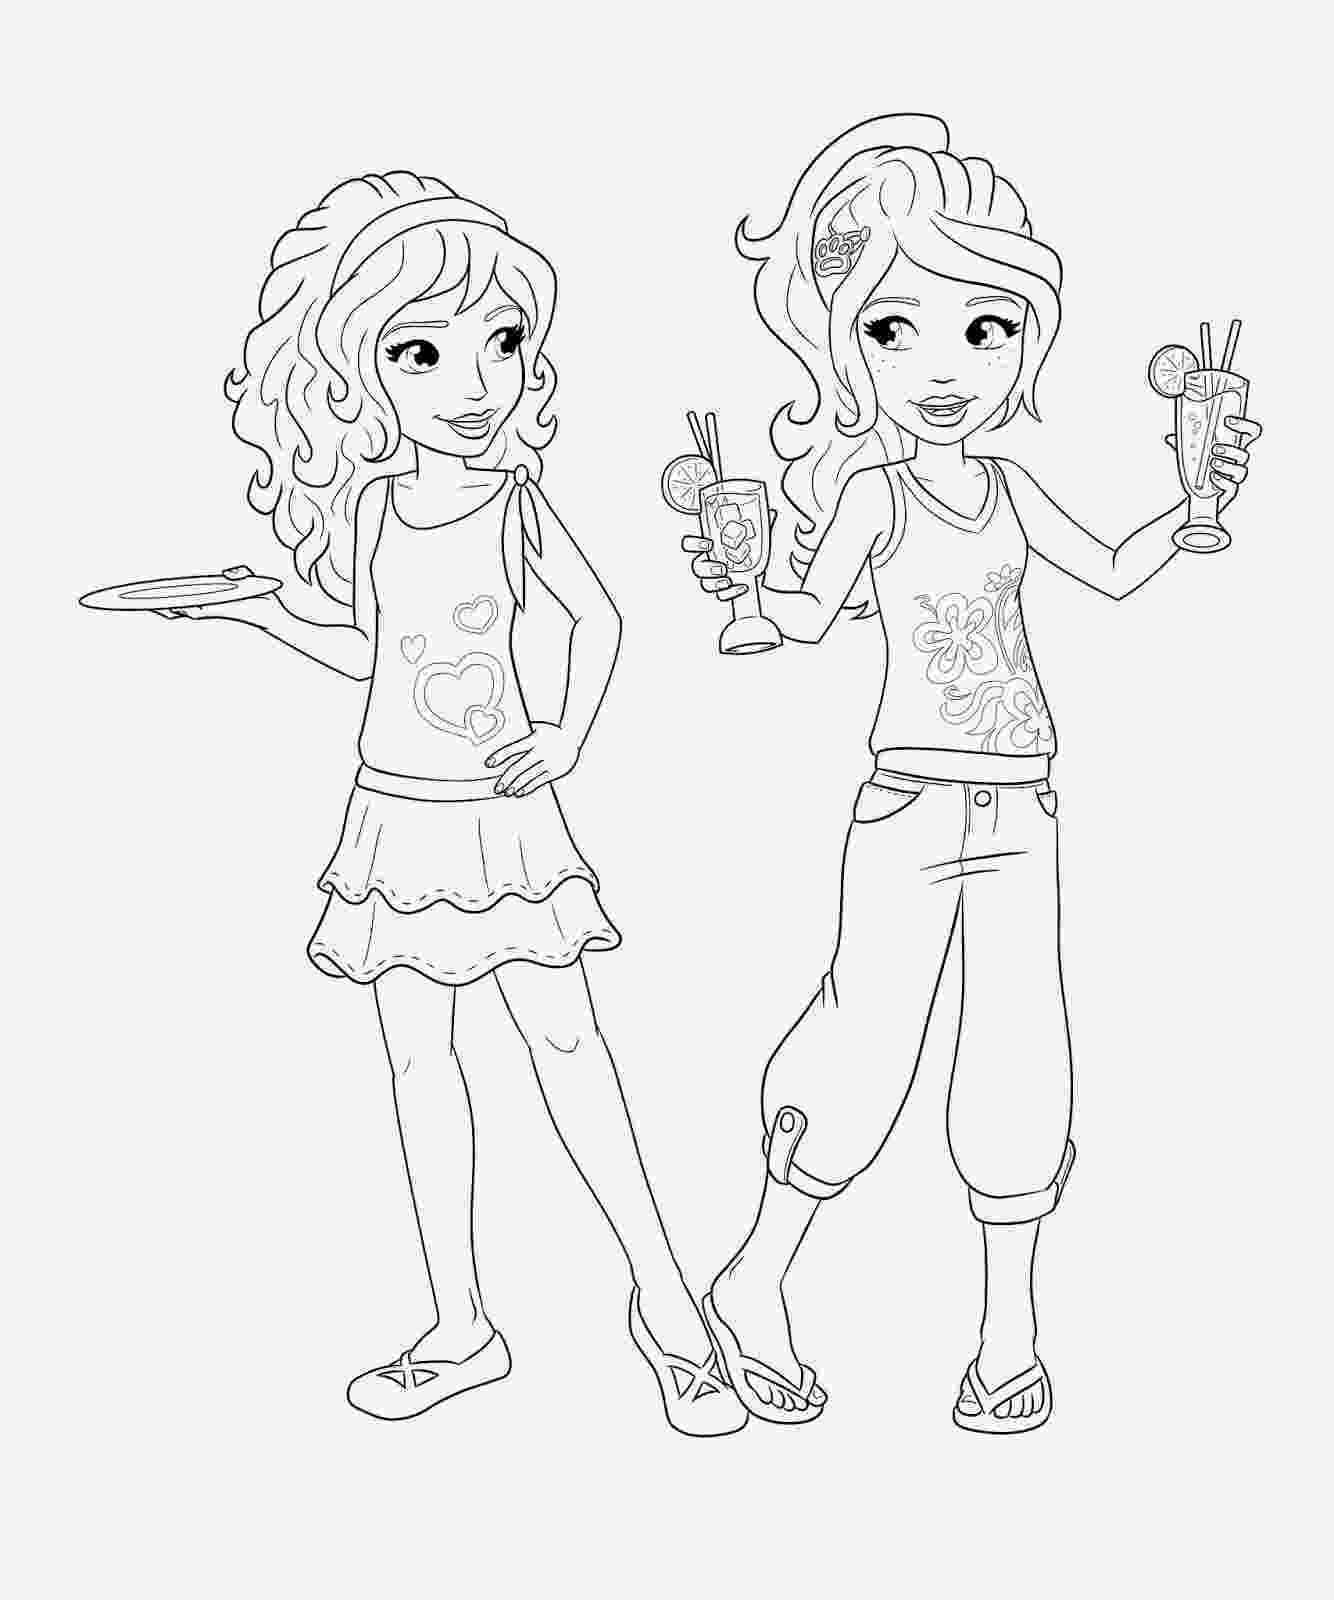 lego friends coloring pages lego friends coloring pages getcoloringpagescom lego friends coloring pages